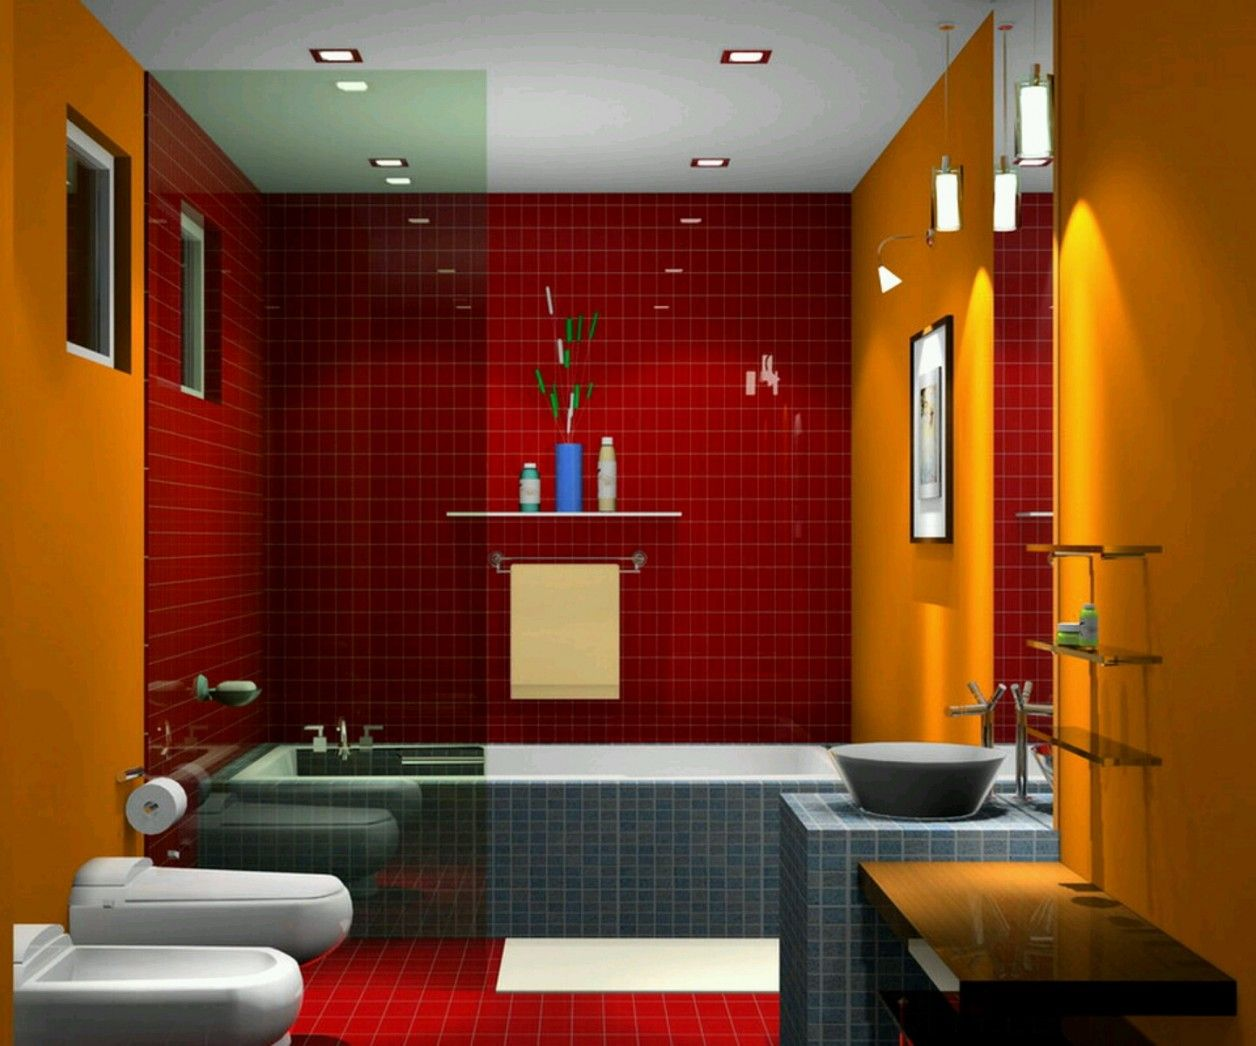 Bathroom Tile Red Color Red And Yellow Colors Bathroom Tile